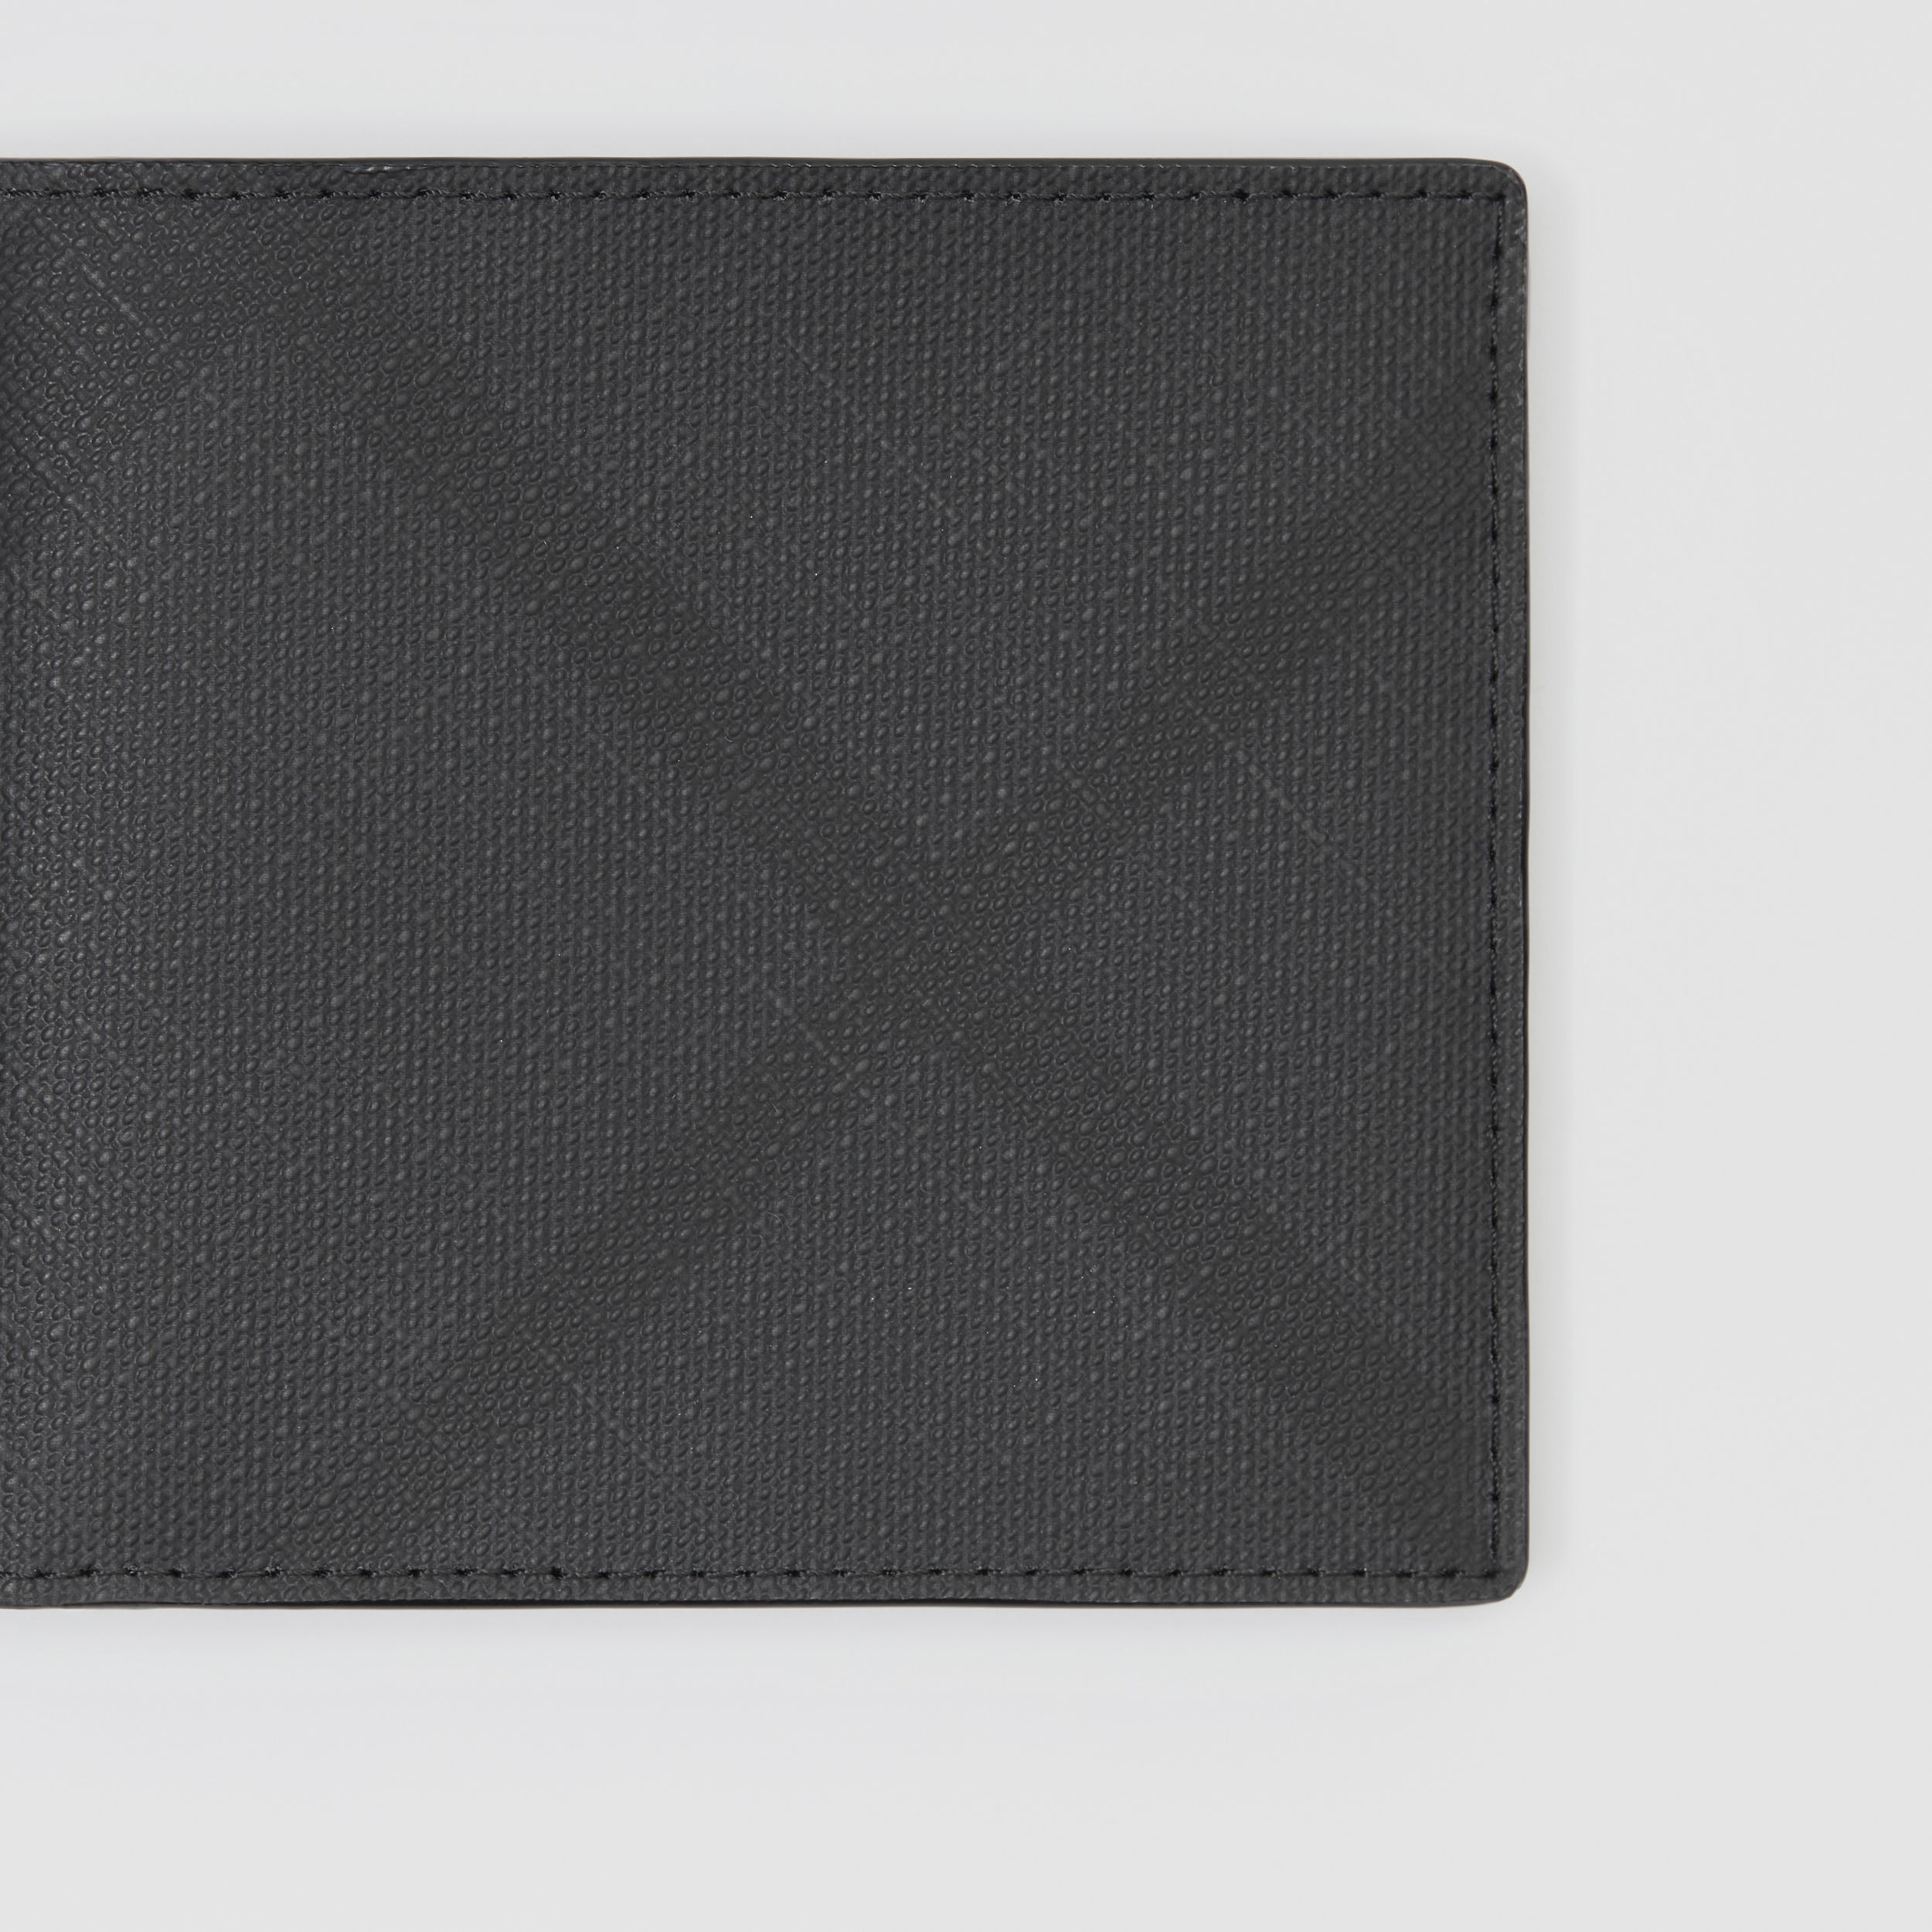 London Check and Leather International Bifold Wallet in Dark Charcoal - Men | Burberry - 2